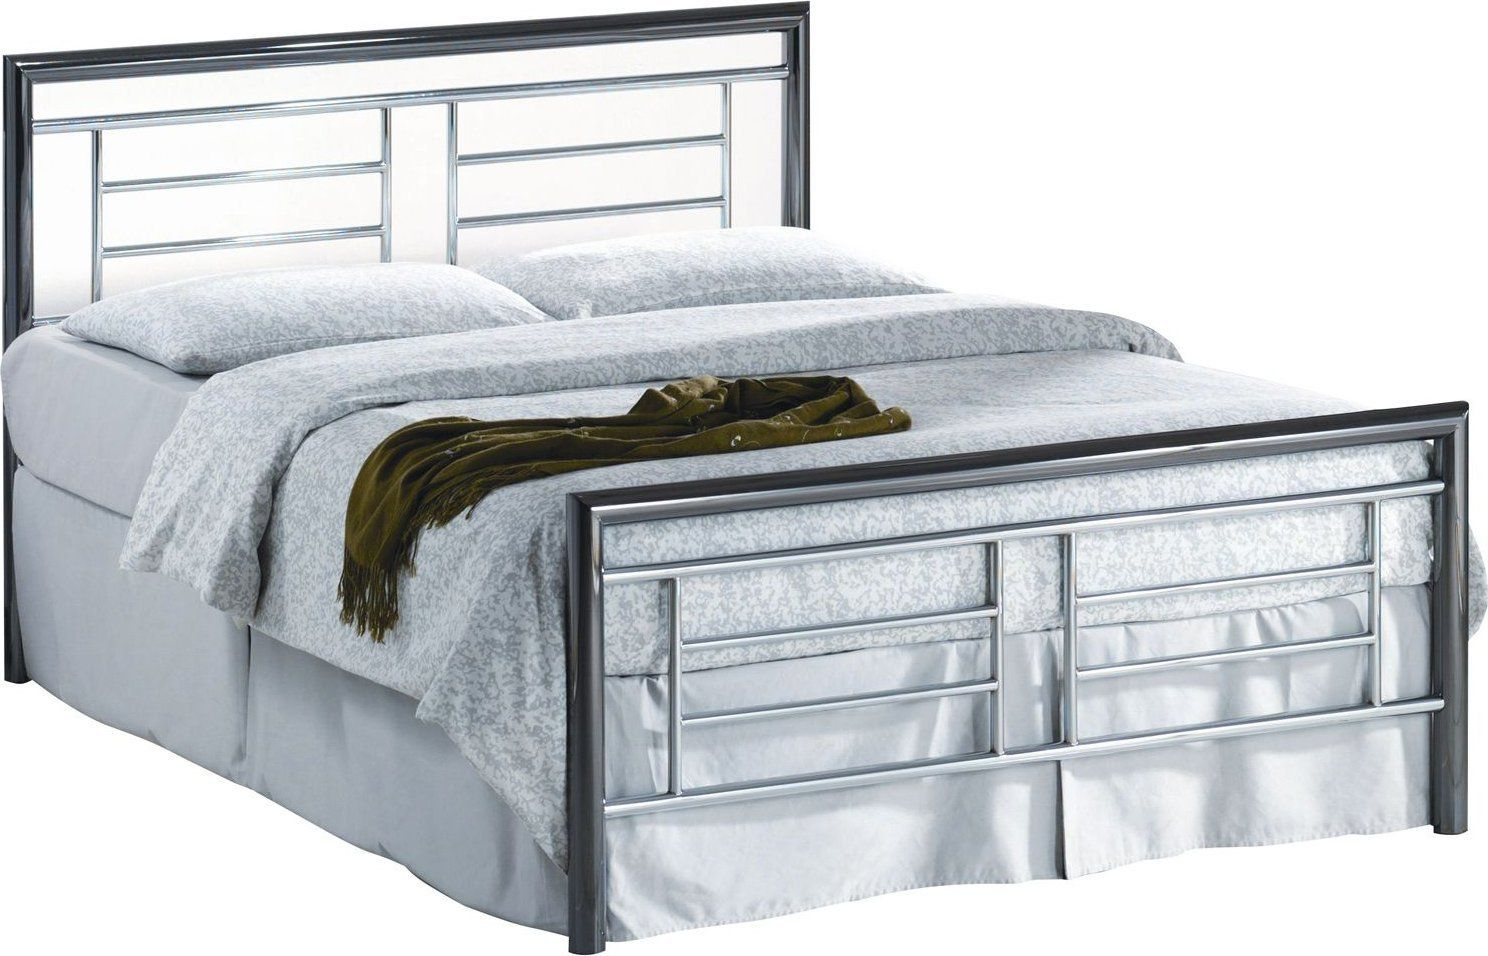 135cm Double Size Montana Modern Chrome and Nickel Frame Bed: Amazon ...